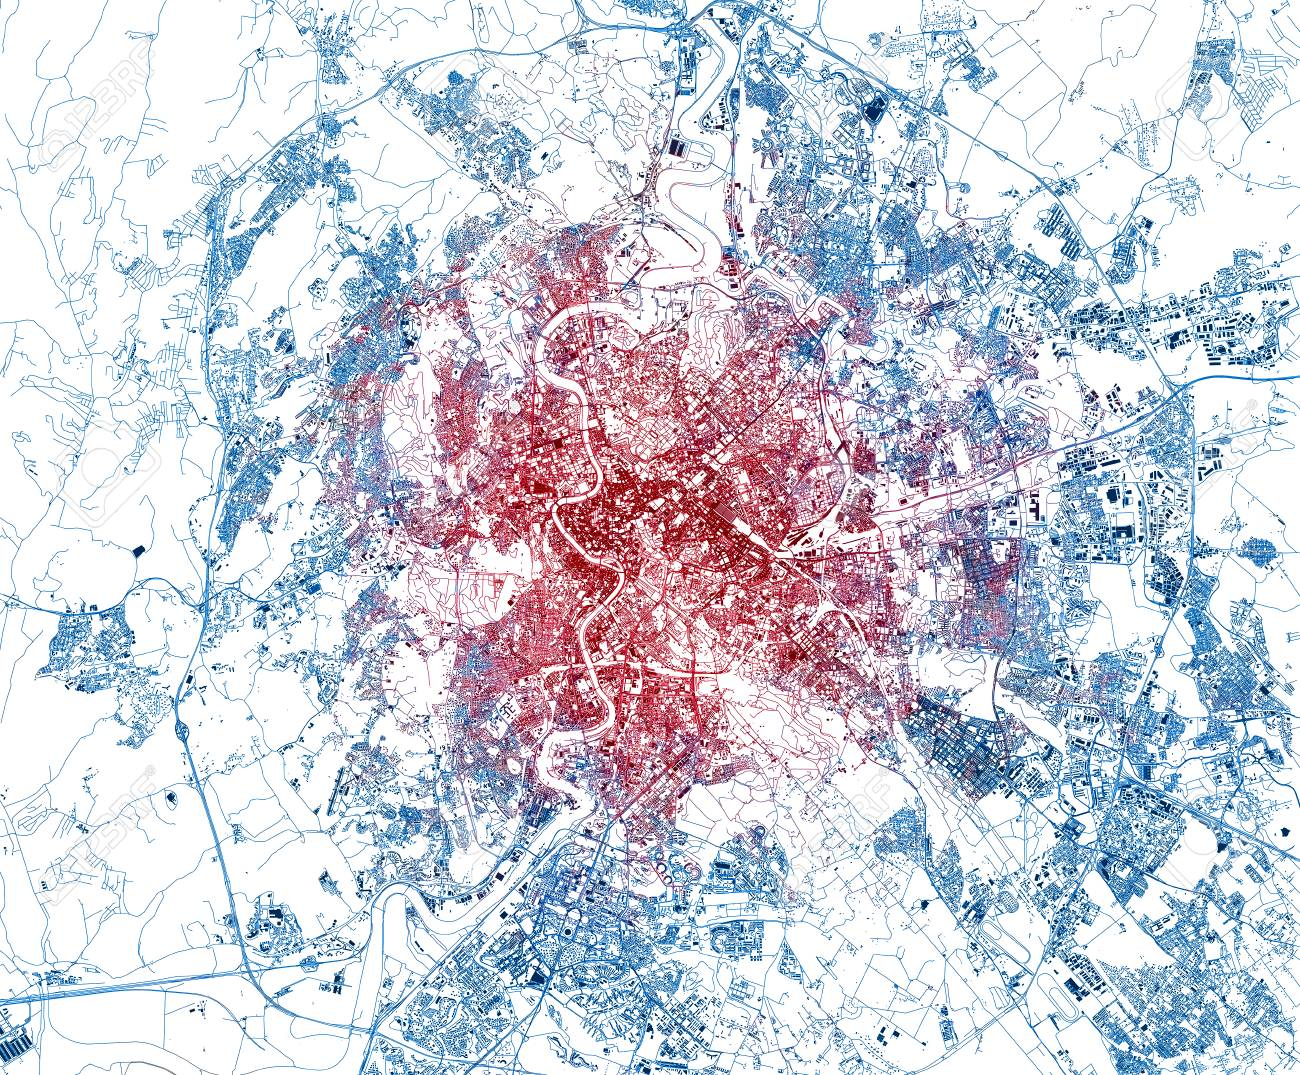 Streets of Rome, city map, Italy, capital. Streets map